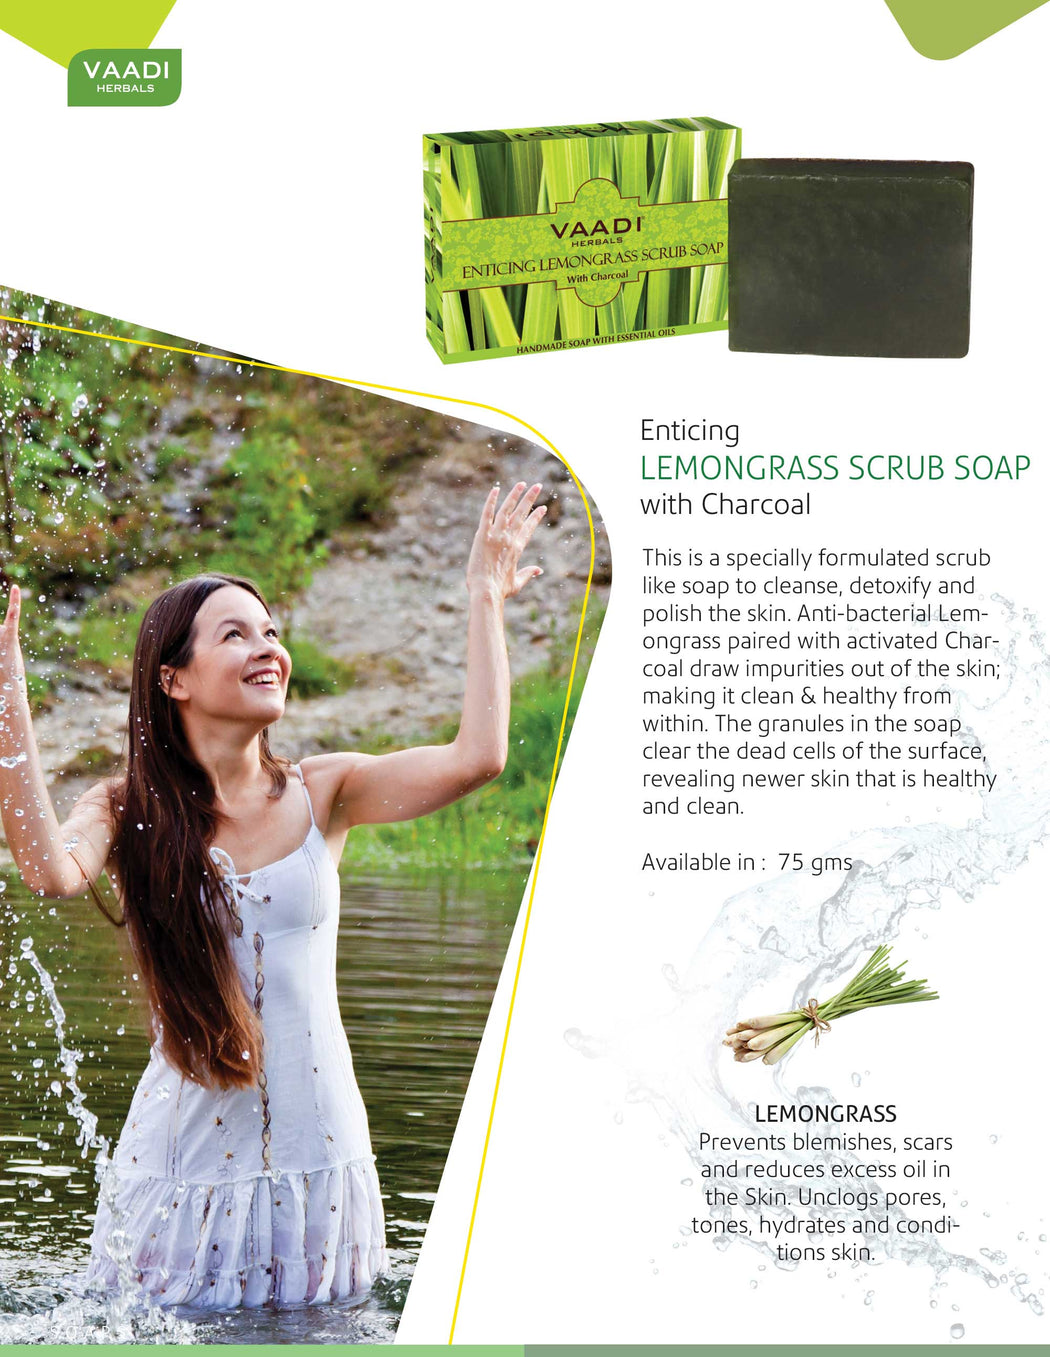 Enticing Organic Lemongrass Soap with Charcoal - Exfoliates & Polishes Skin - Makes Skin Smooth (3 x 75 gms / 2.7 oz)